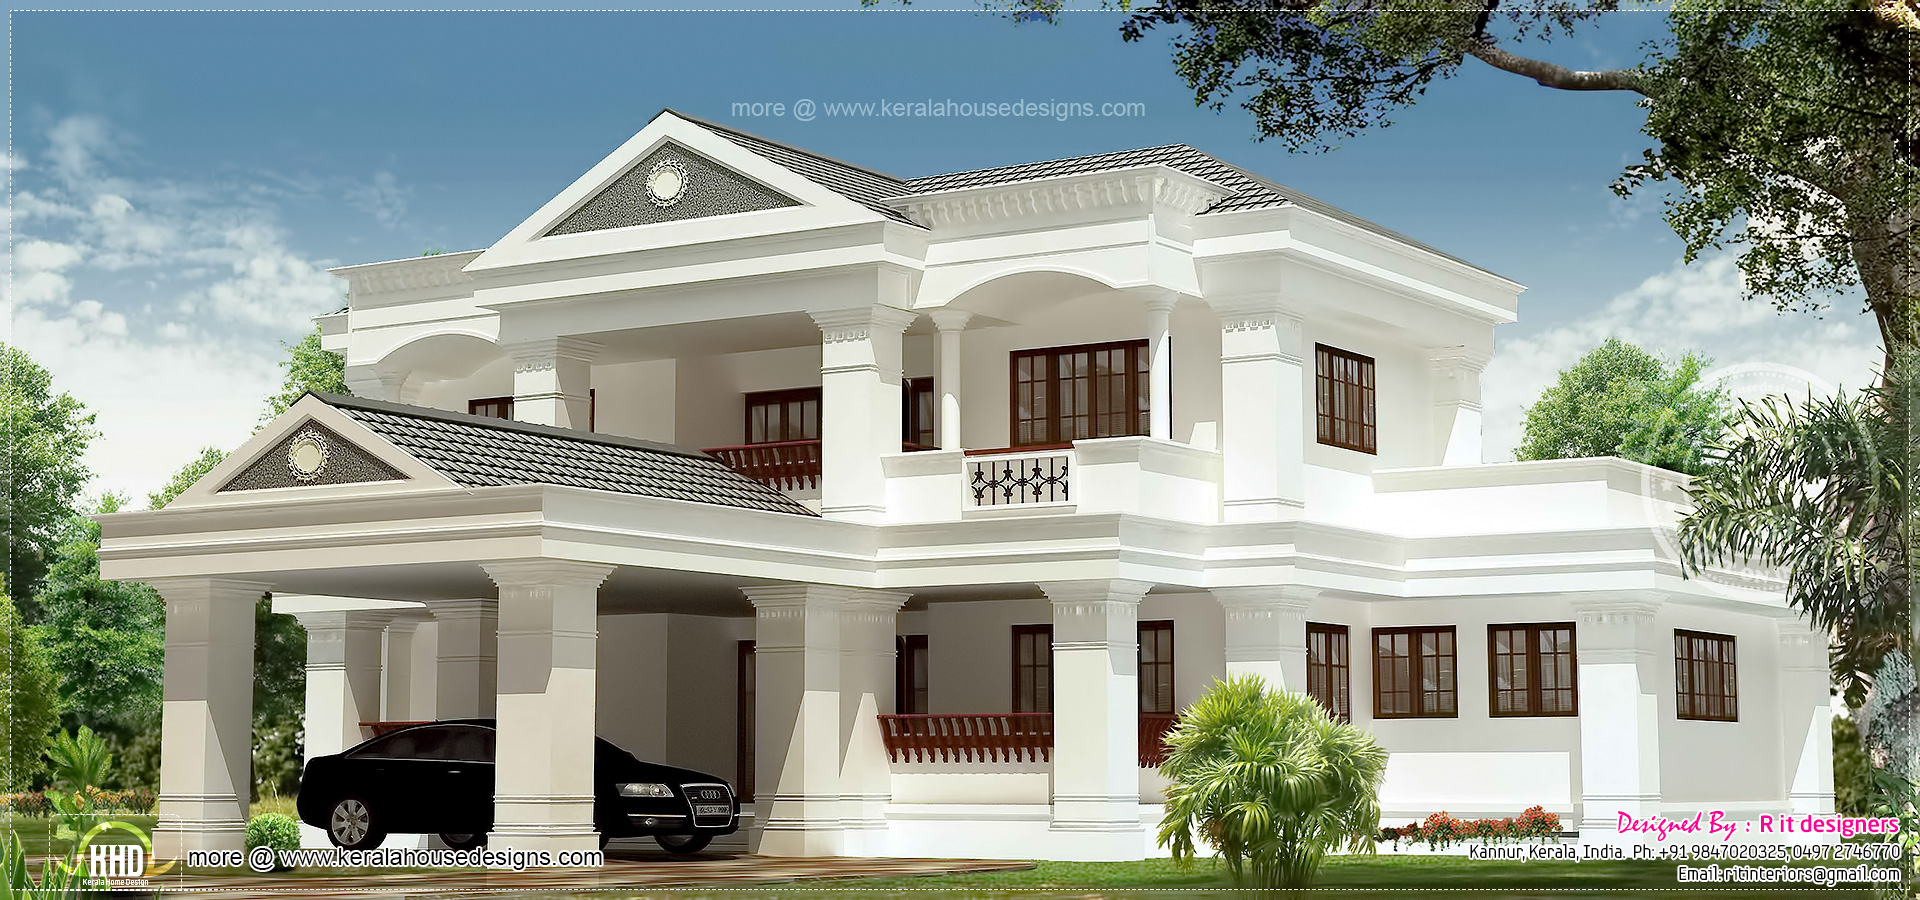 3100 luxury 5 bhk villa exterior kerala home for Home designs 3000 square feet